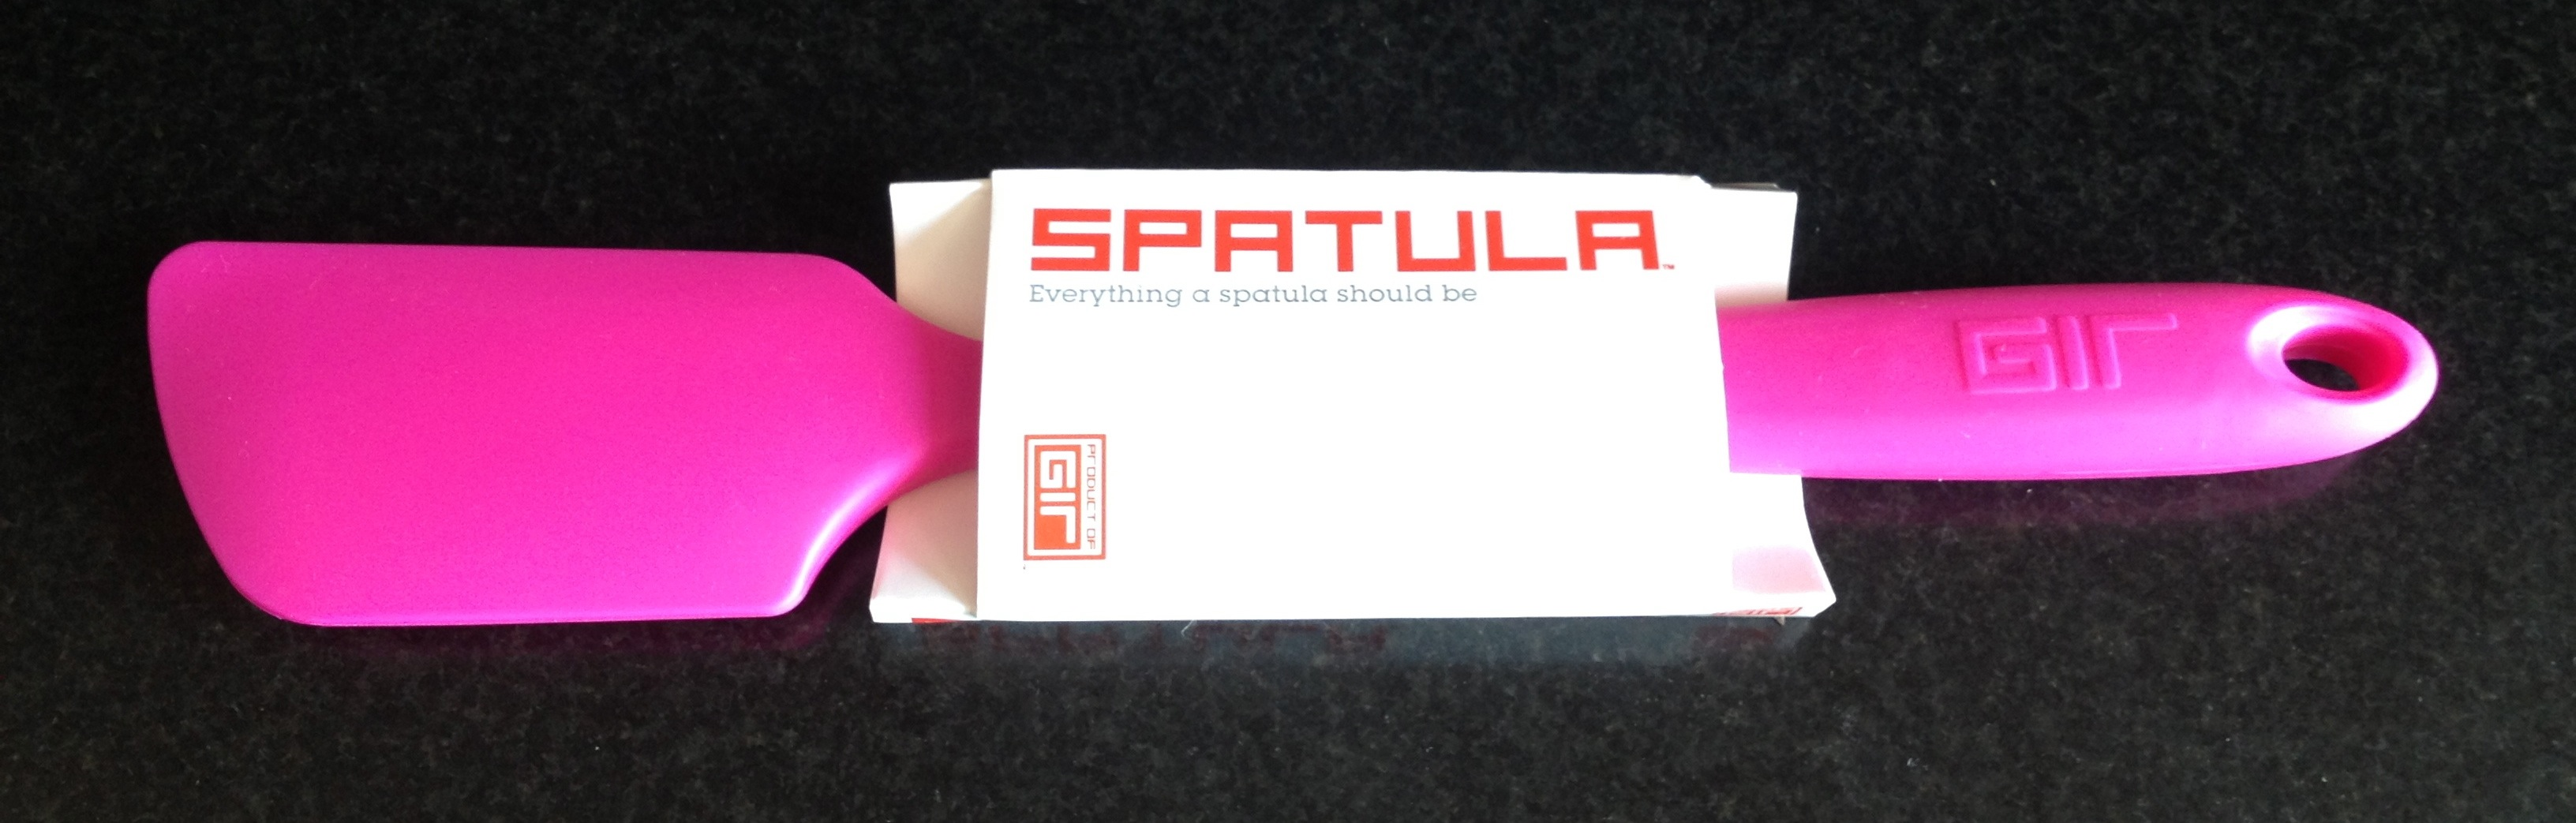 Get It Right spatula in hot pin with packaging.